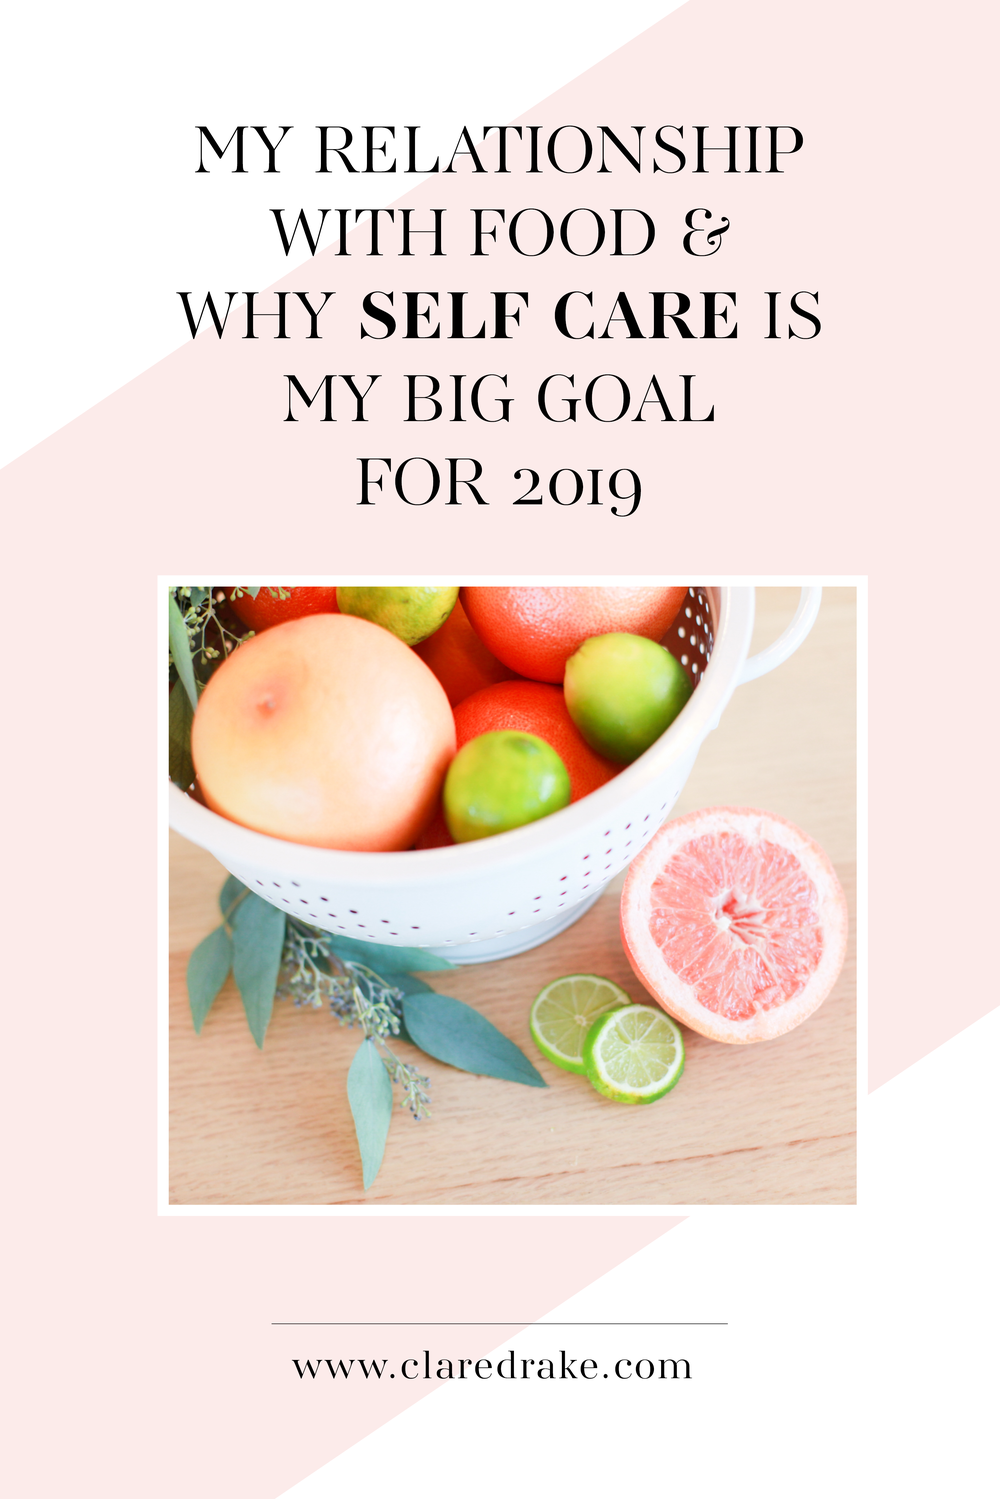 My Relationship with Food and Why Self Care is My Big Goal for 2019